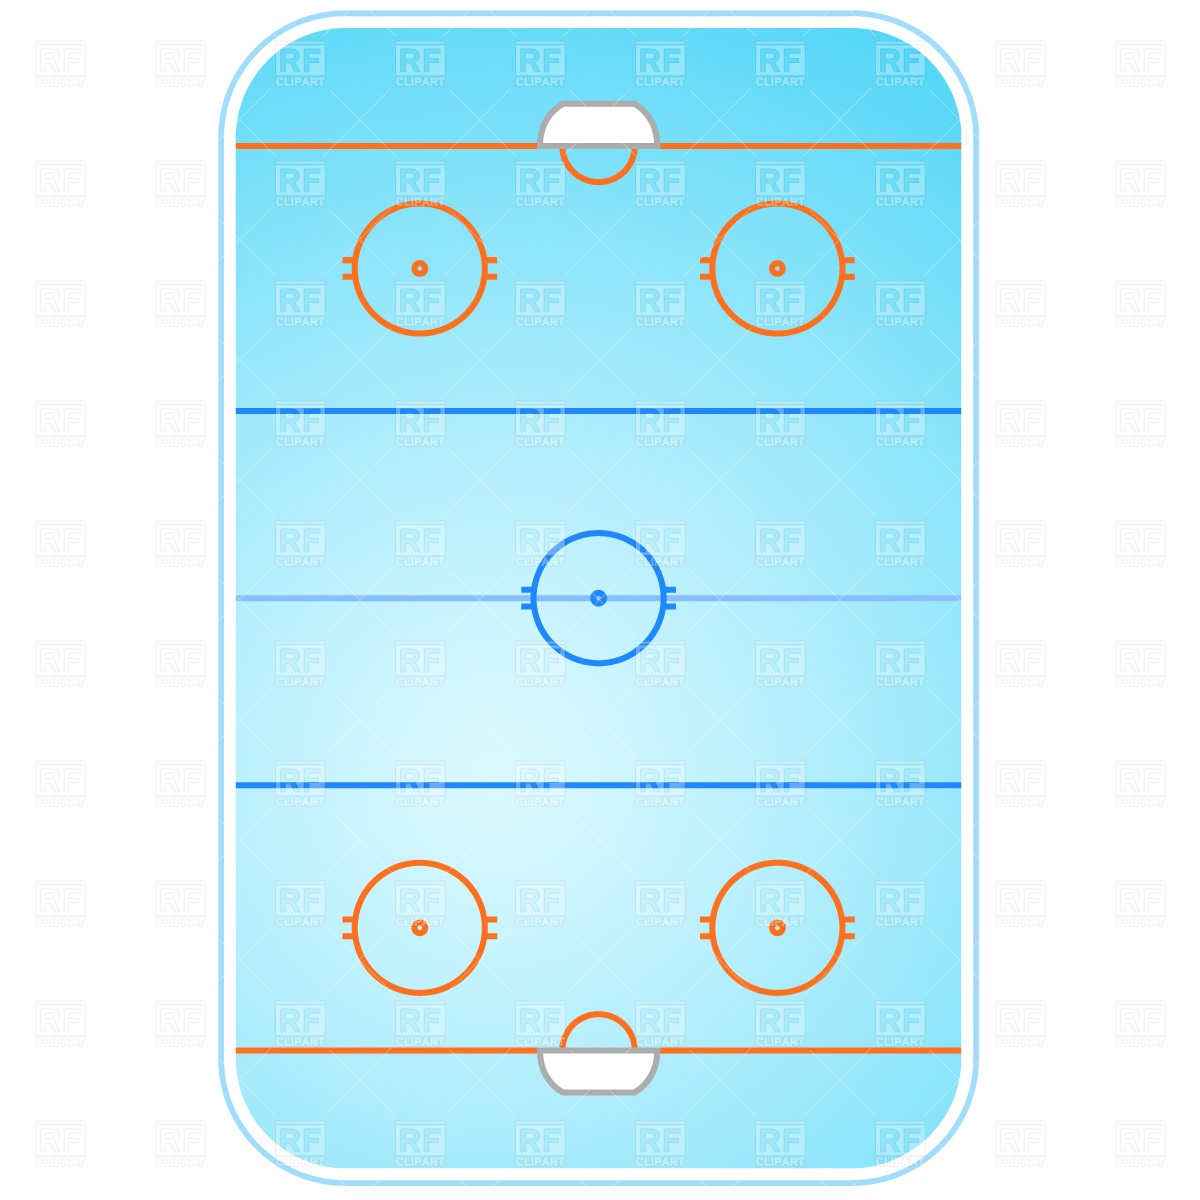 Ice Hockey Rink Layout 809 Sport And Leisure Download Royalty Free